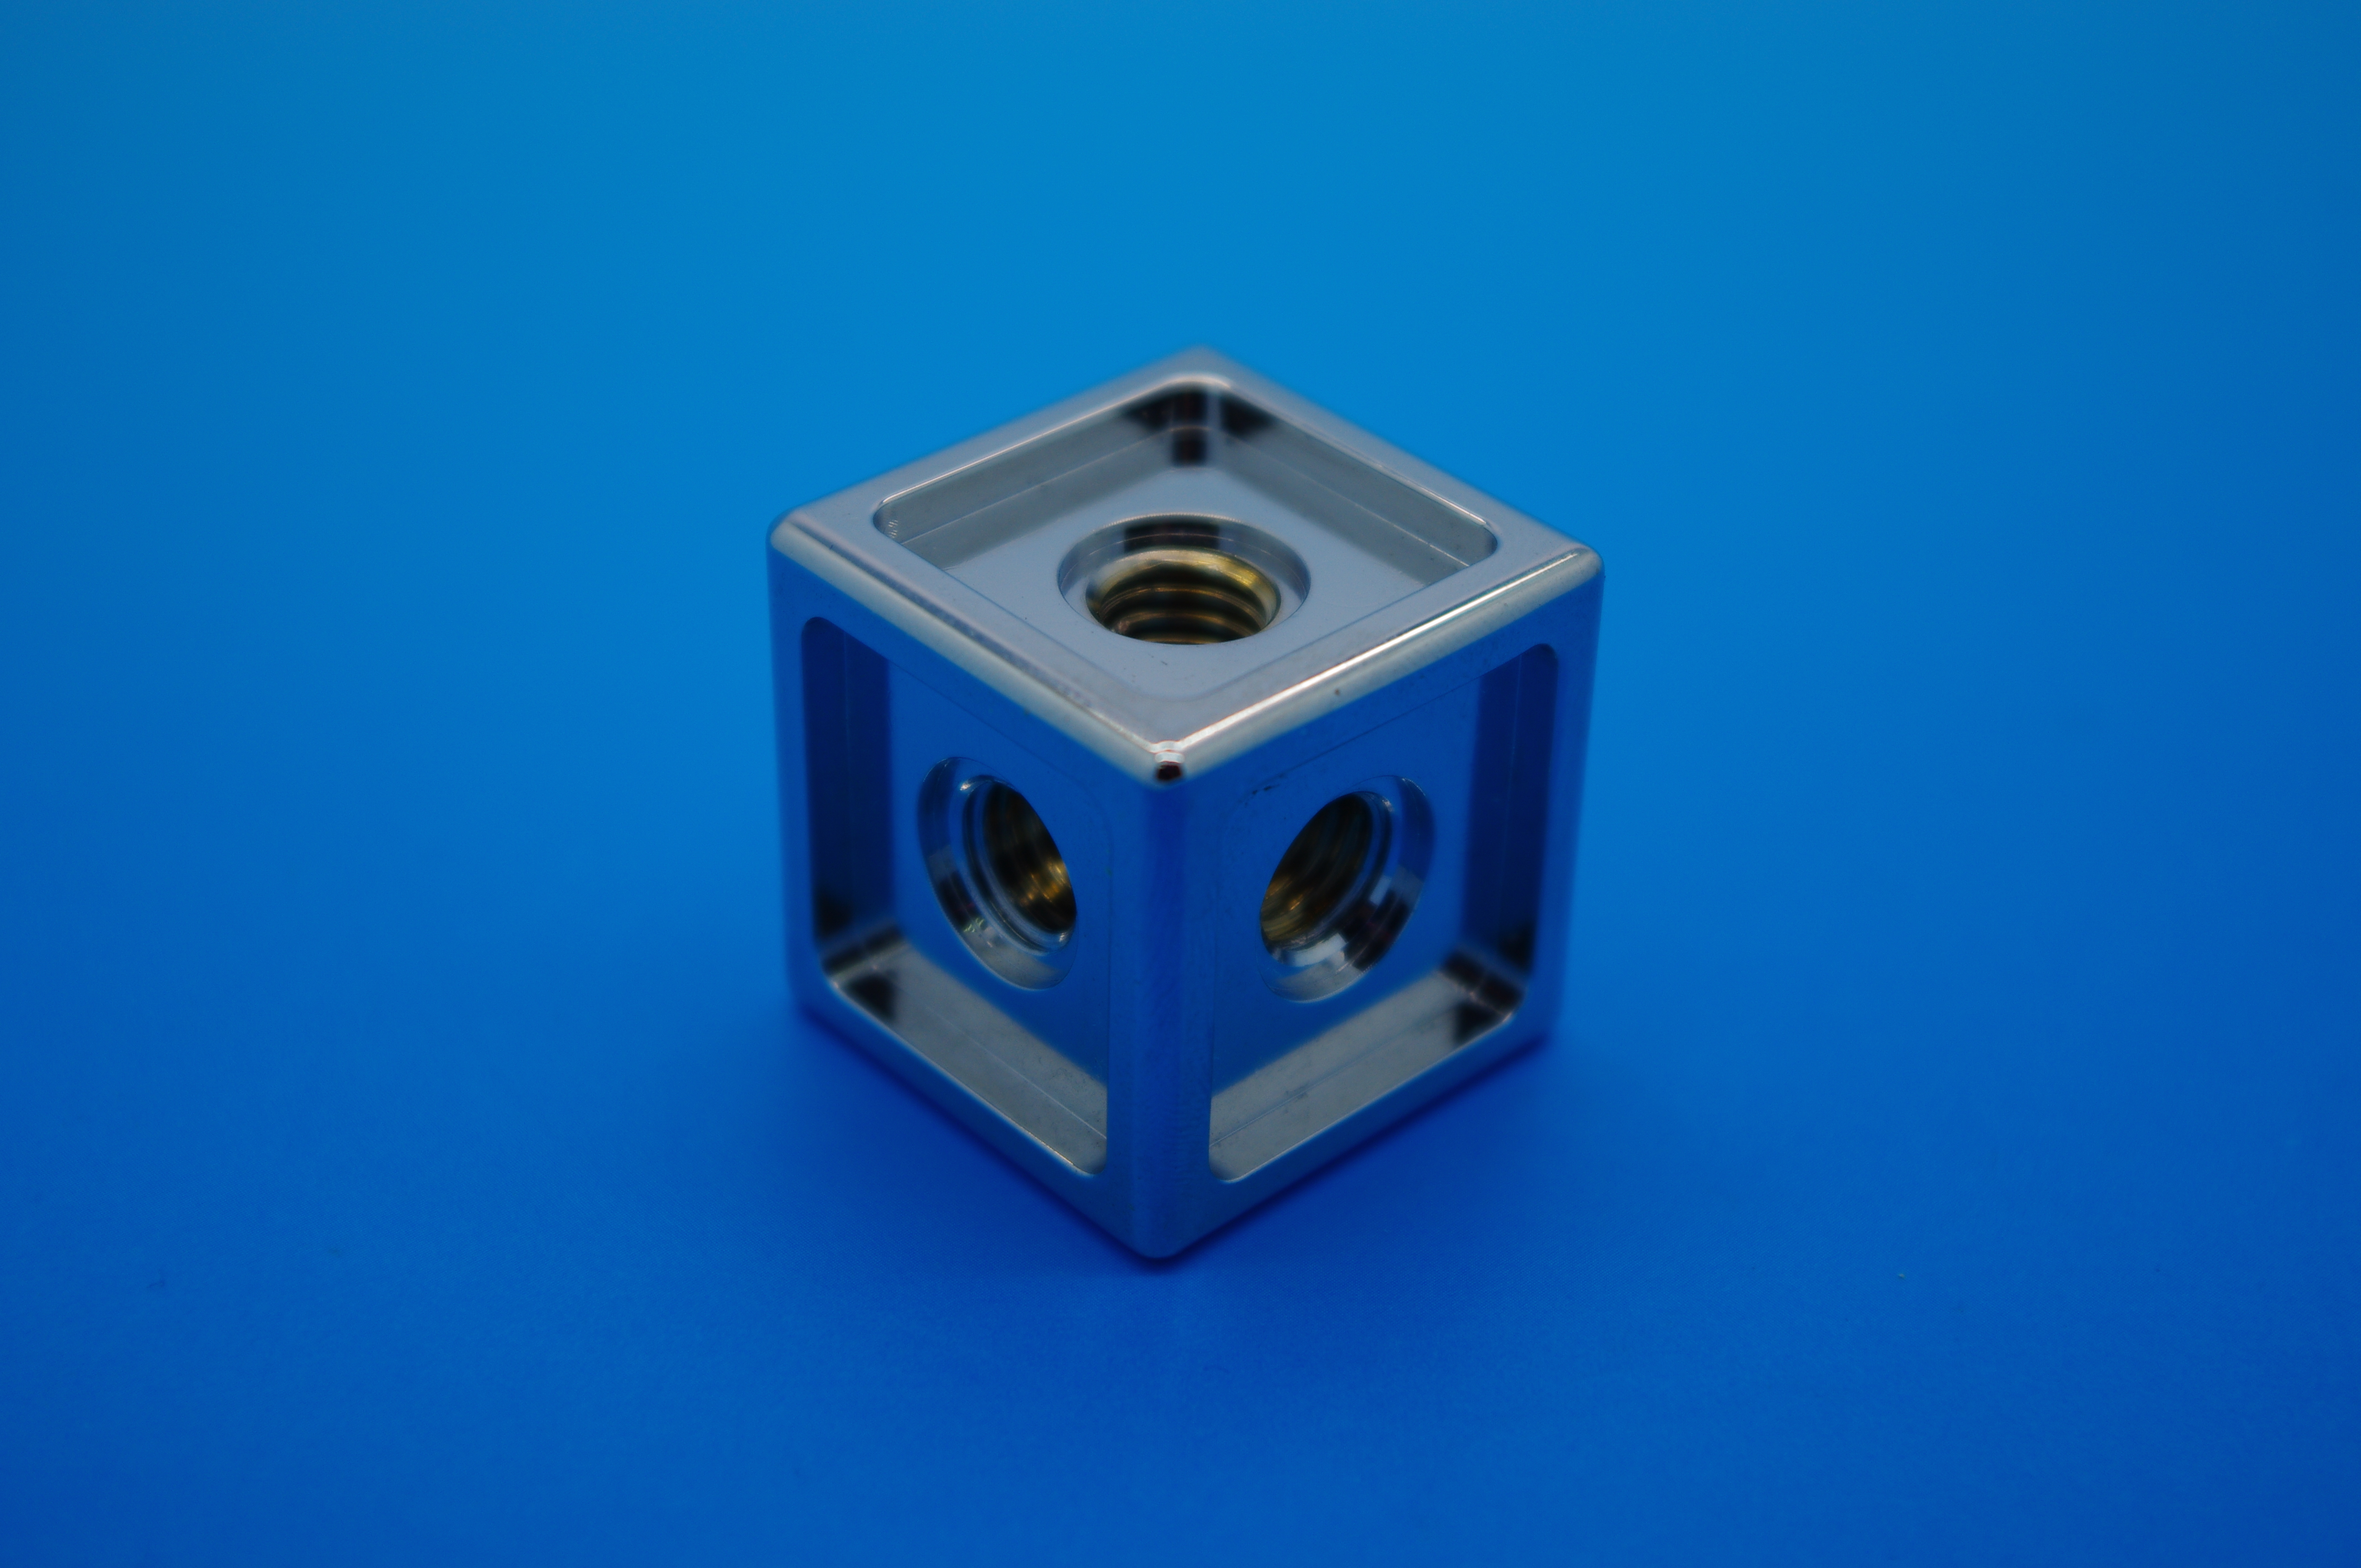 [:en] cube machined in China [:fr]Cube usiné en Chine